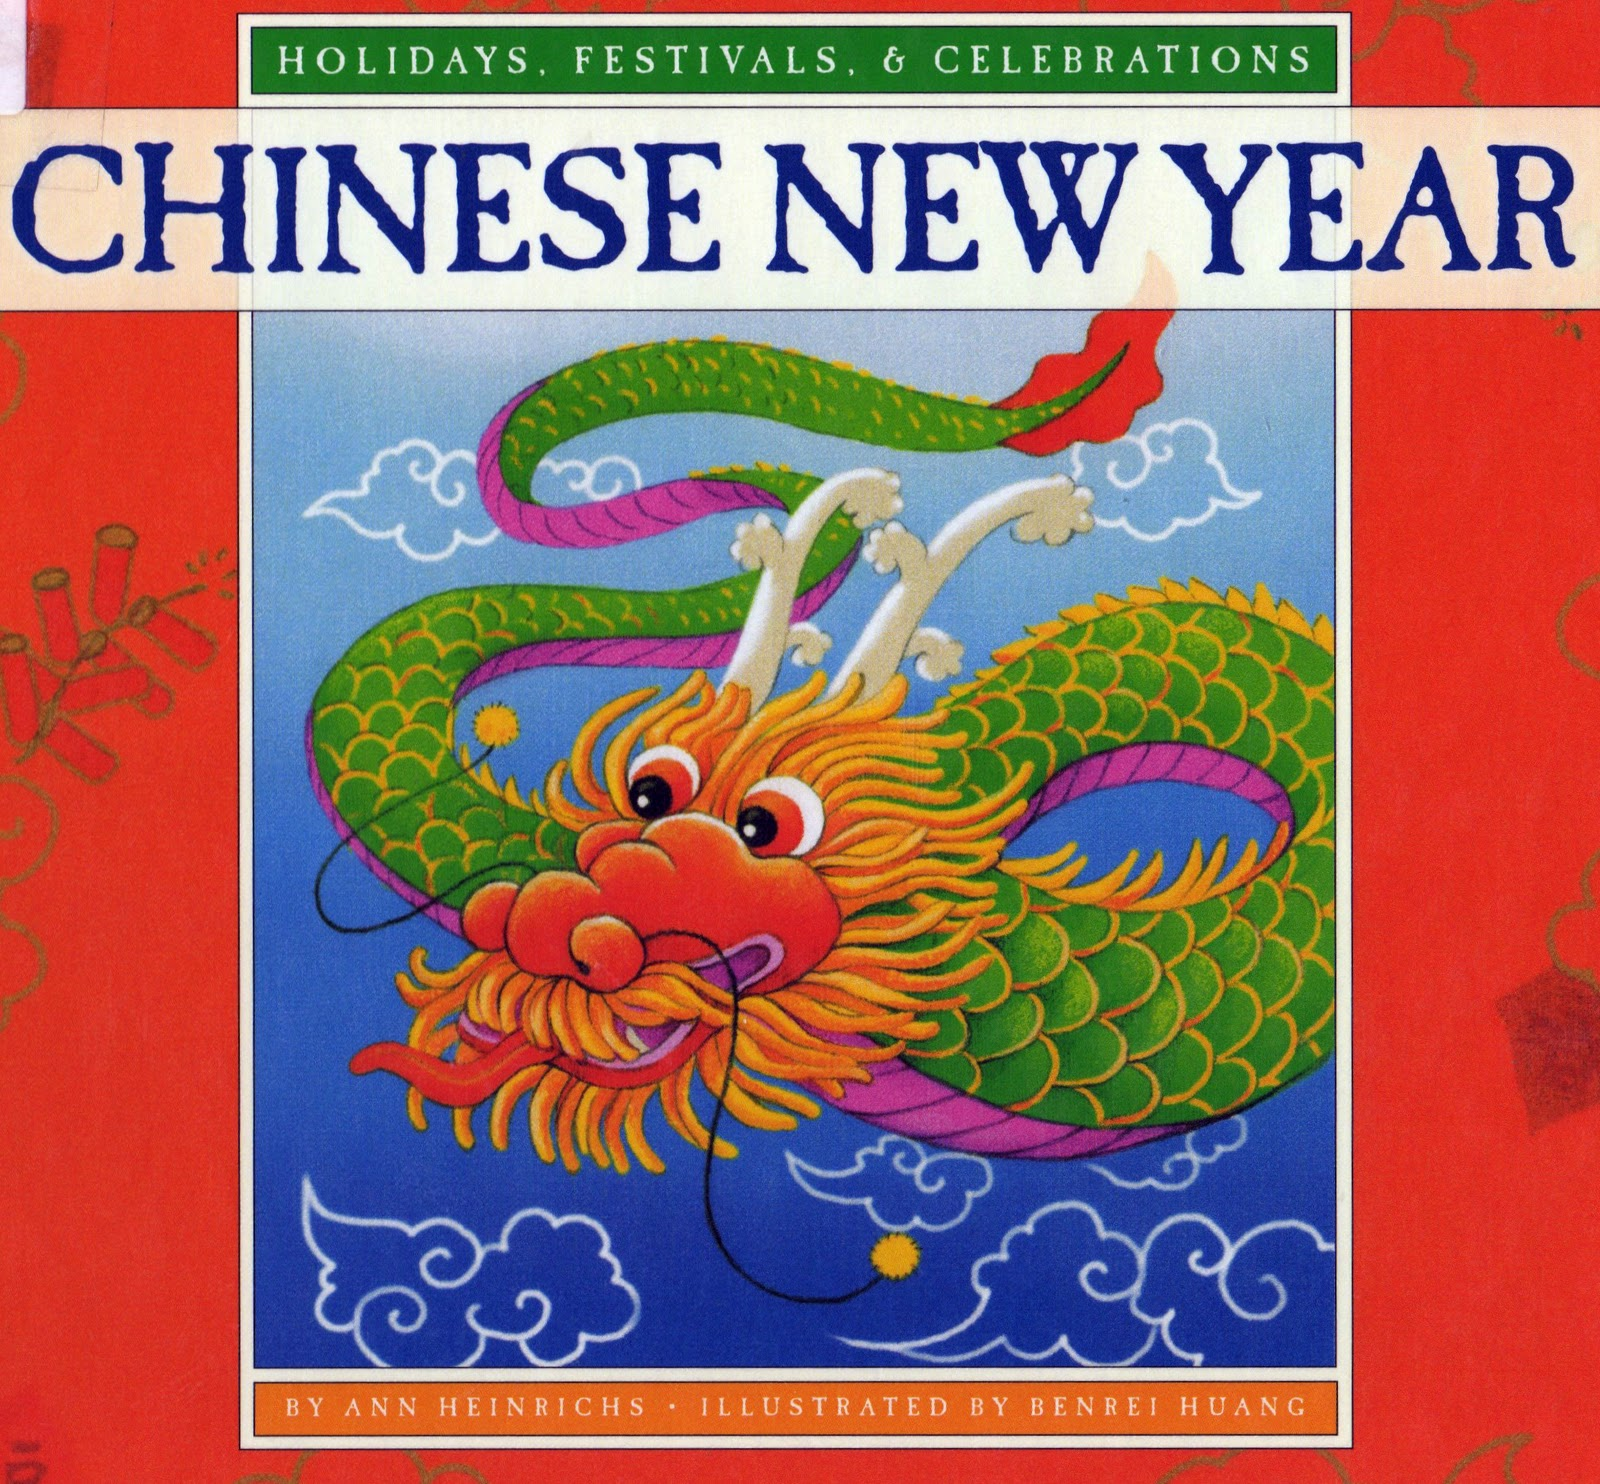 am already head over heels for next year 2012. 1600 x 1484.Christian Chinese New Year E-cards